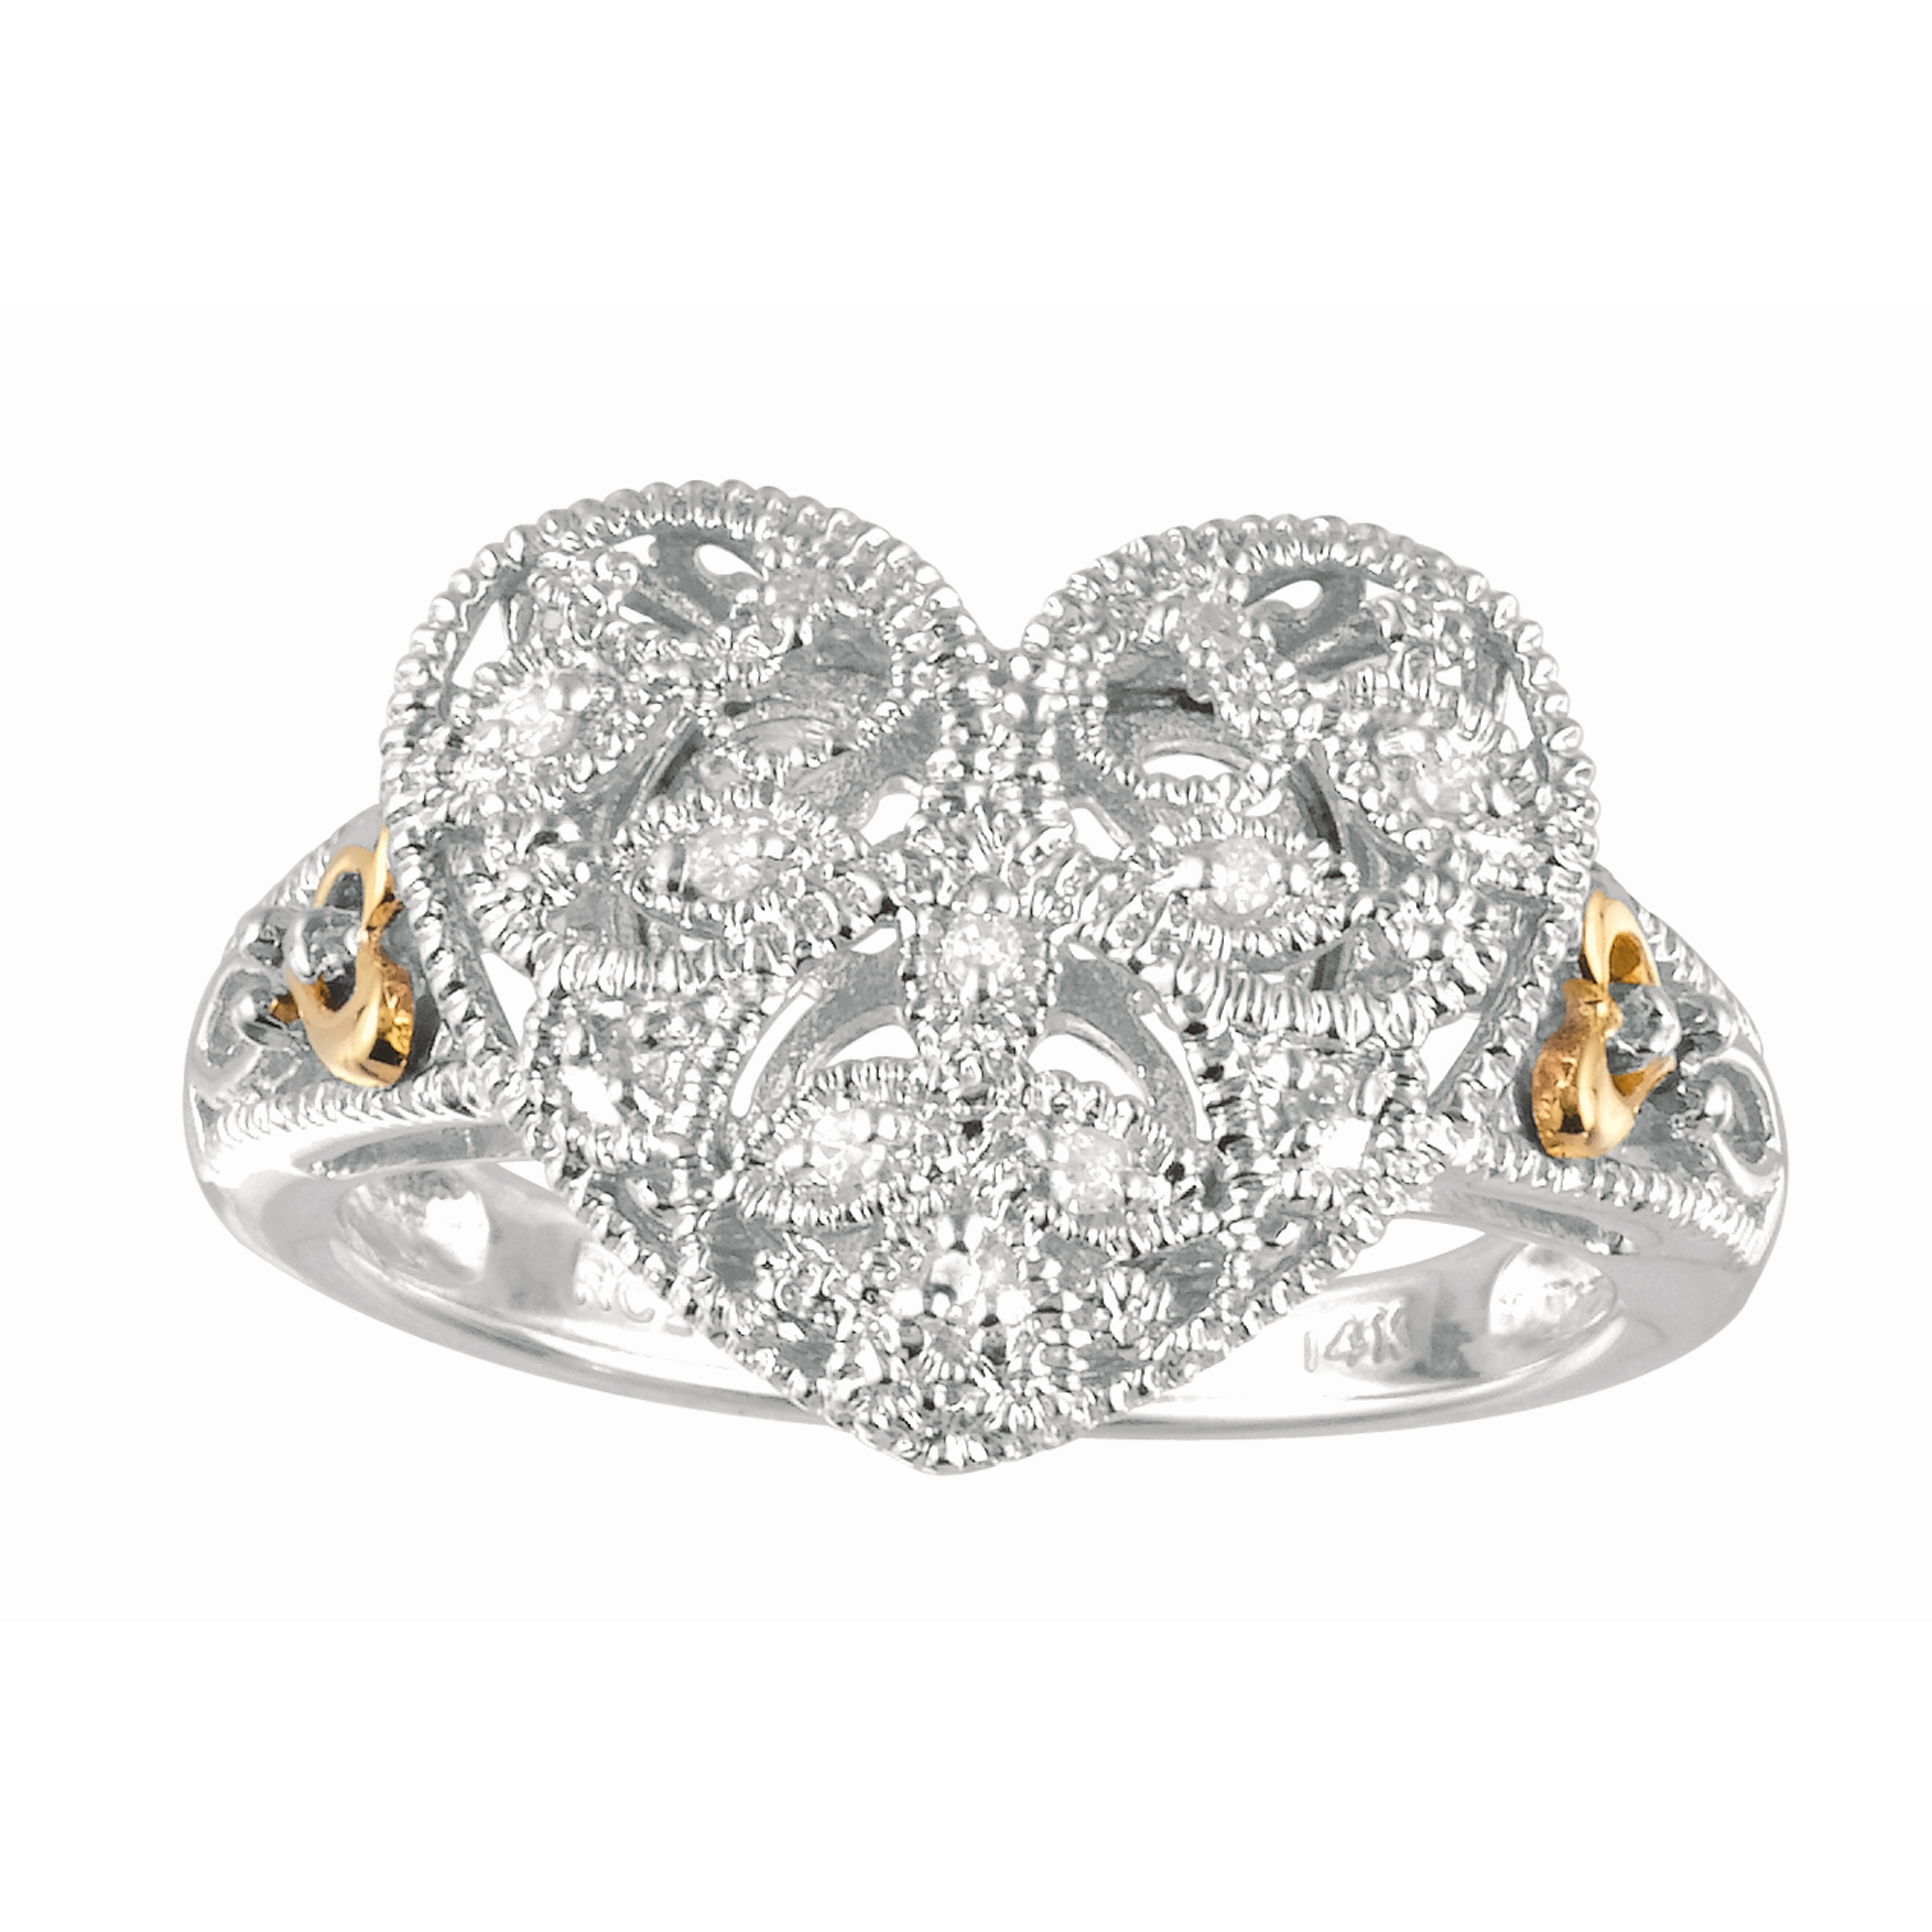 14kt Yellow Gold+Silver with Rhodium Finish Shiny Textured Fancy Heart Top Size 7 Ring with 0.06ct White Diamond